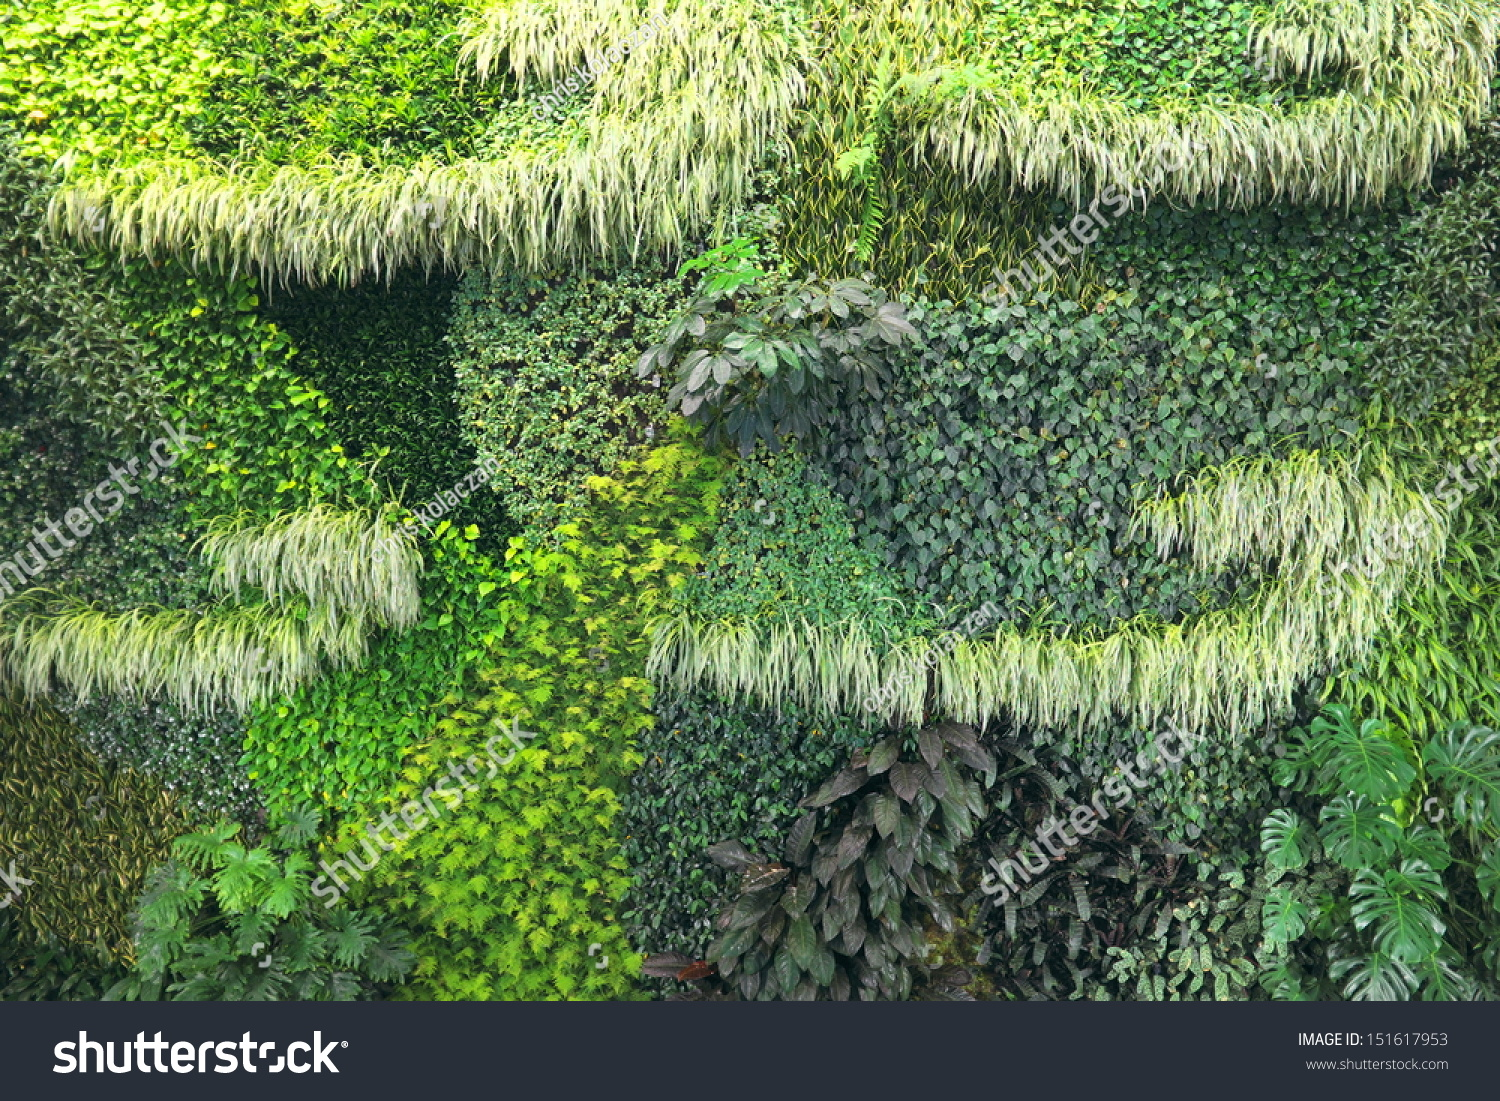 Living Wall Background Showing Lush Growth Stock Photo